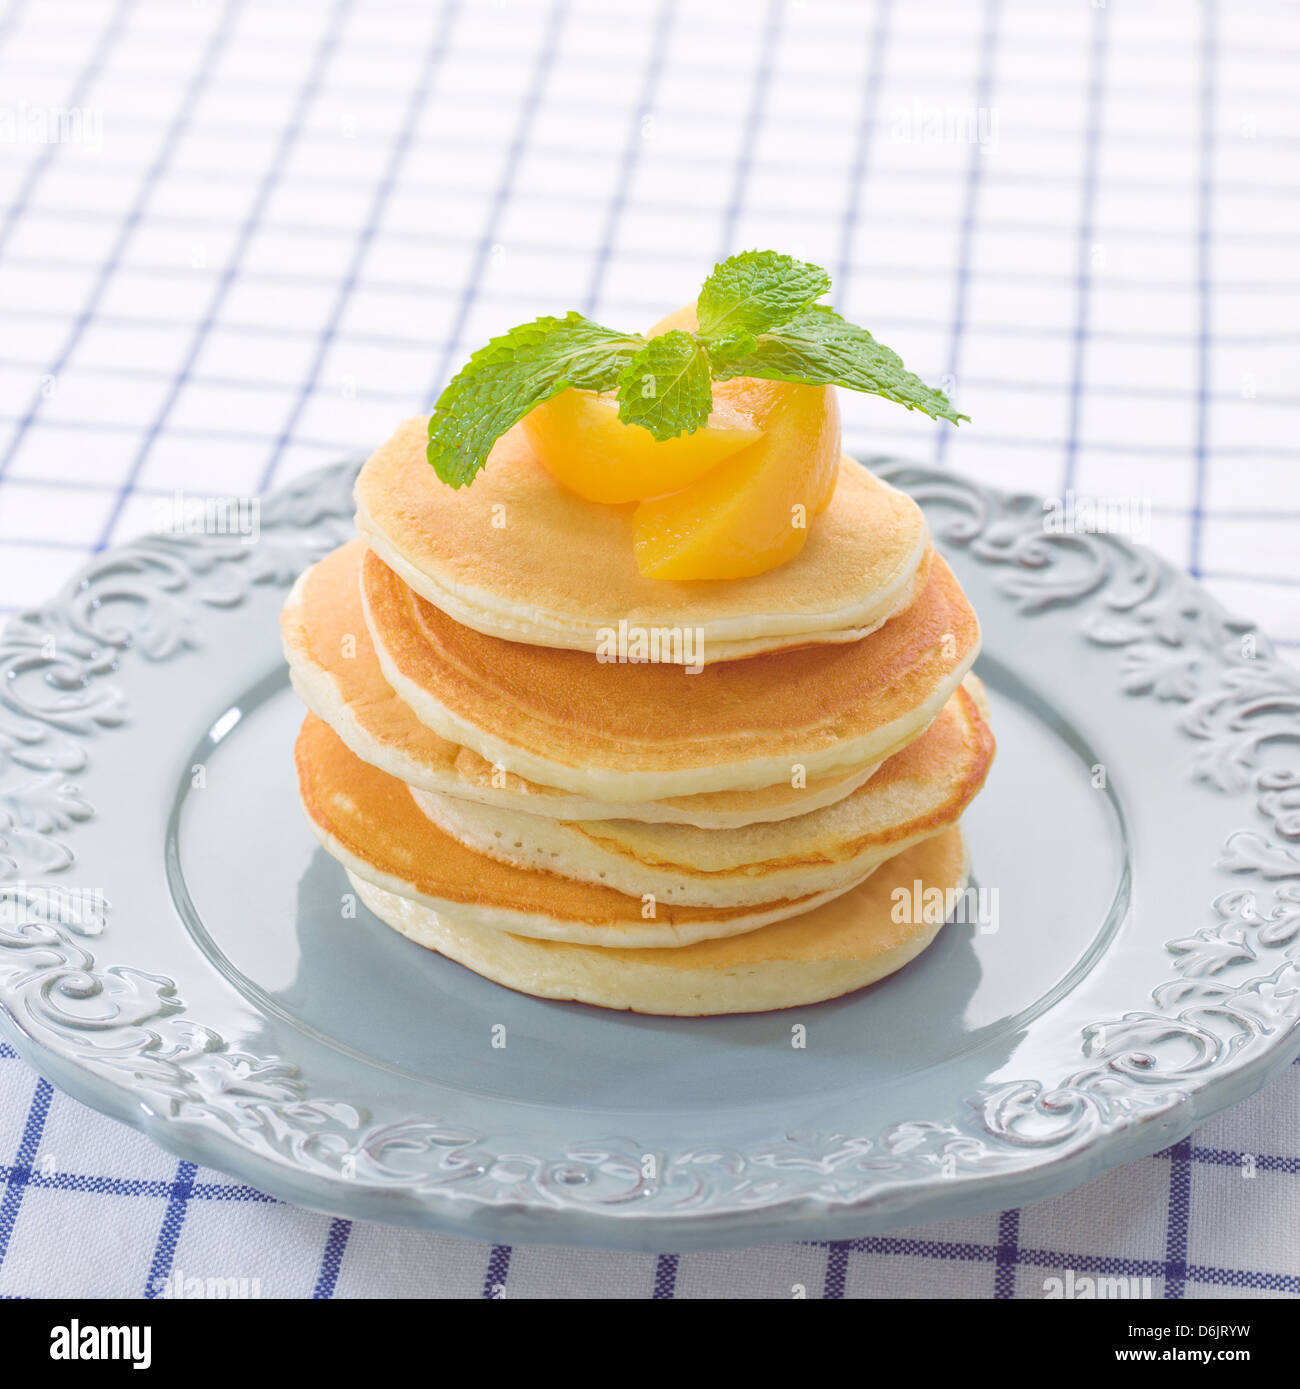 Golden pancakes topping with peach and mint - Stock Image